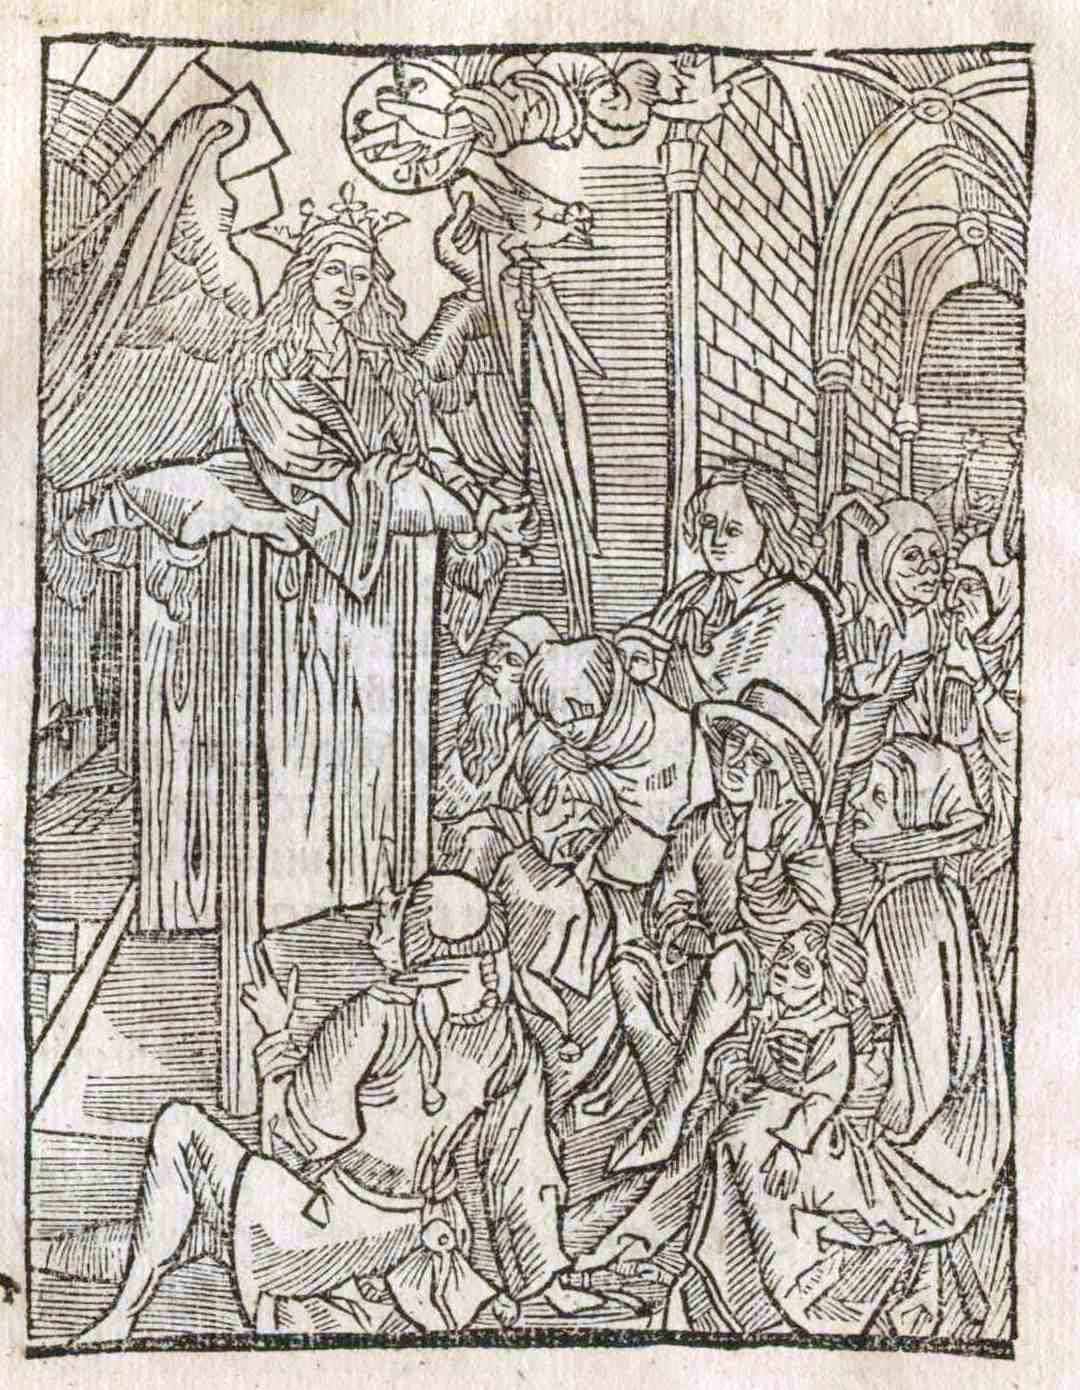 Full page woodcut illustration from the 1498 Dyalogus of Wisdom lecturing fools and the ignorant.